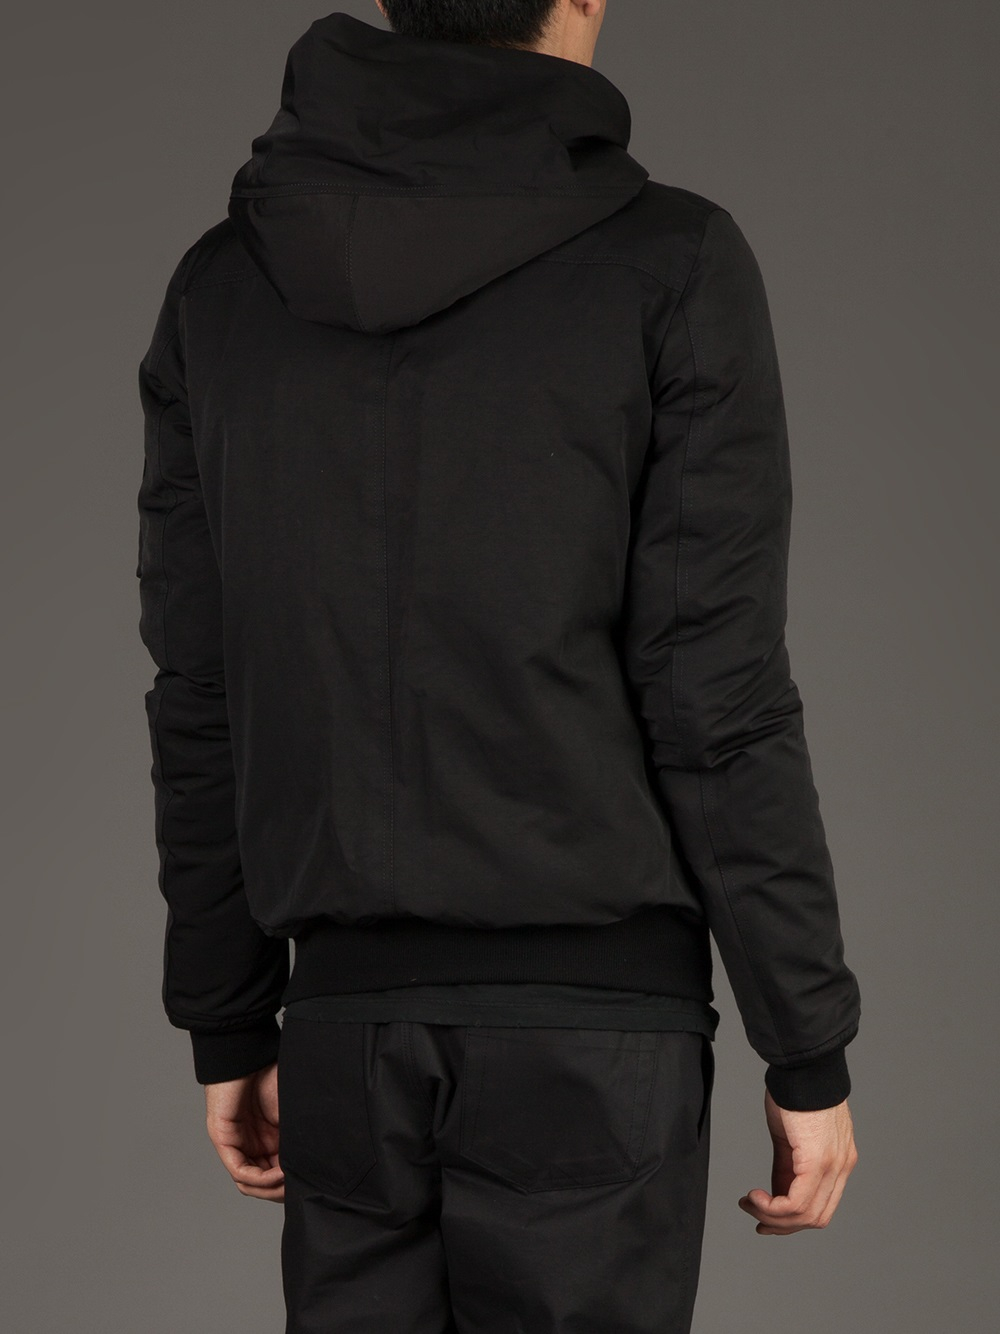 Rick owens Hooded Bomber Jacket in Black for Men | Lyst